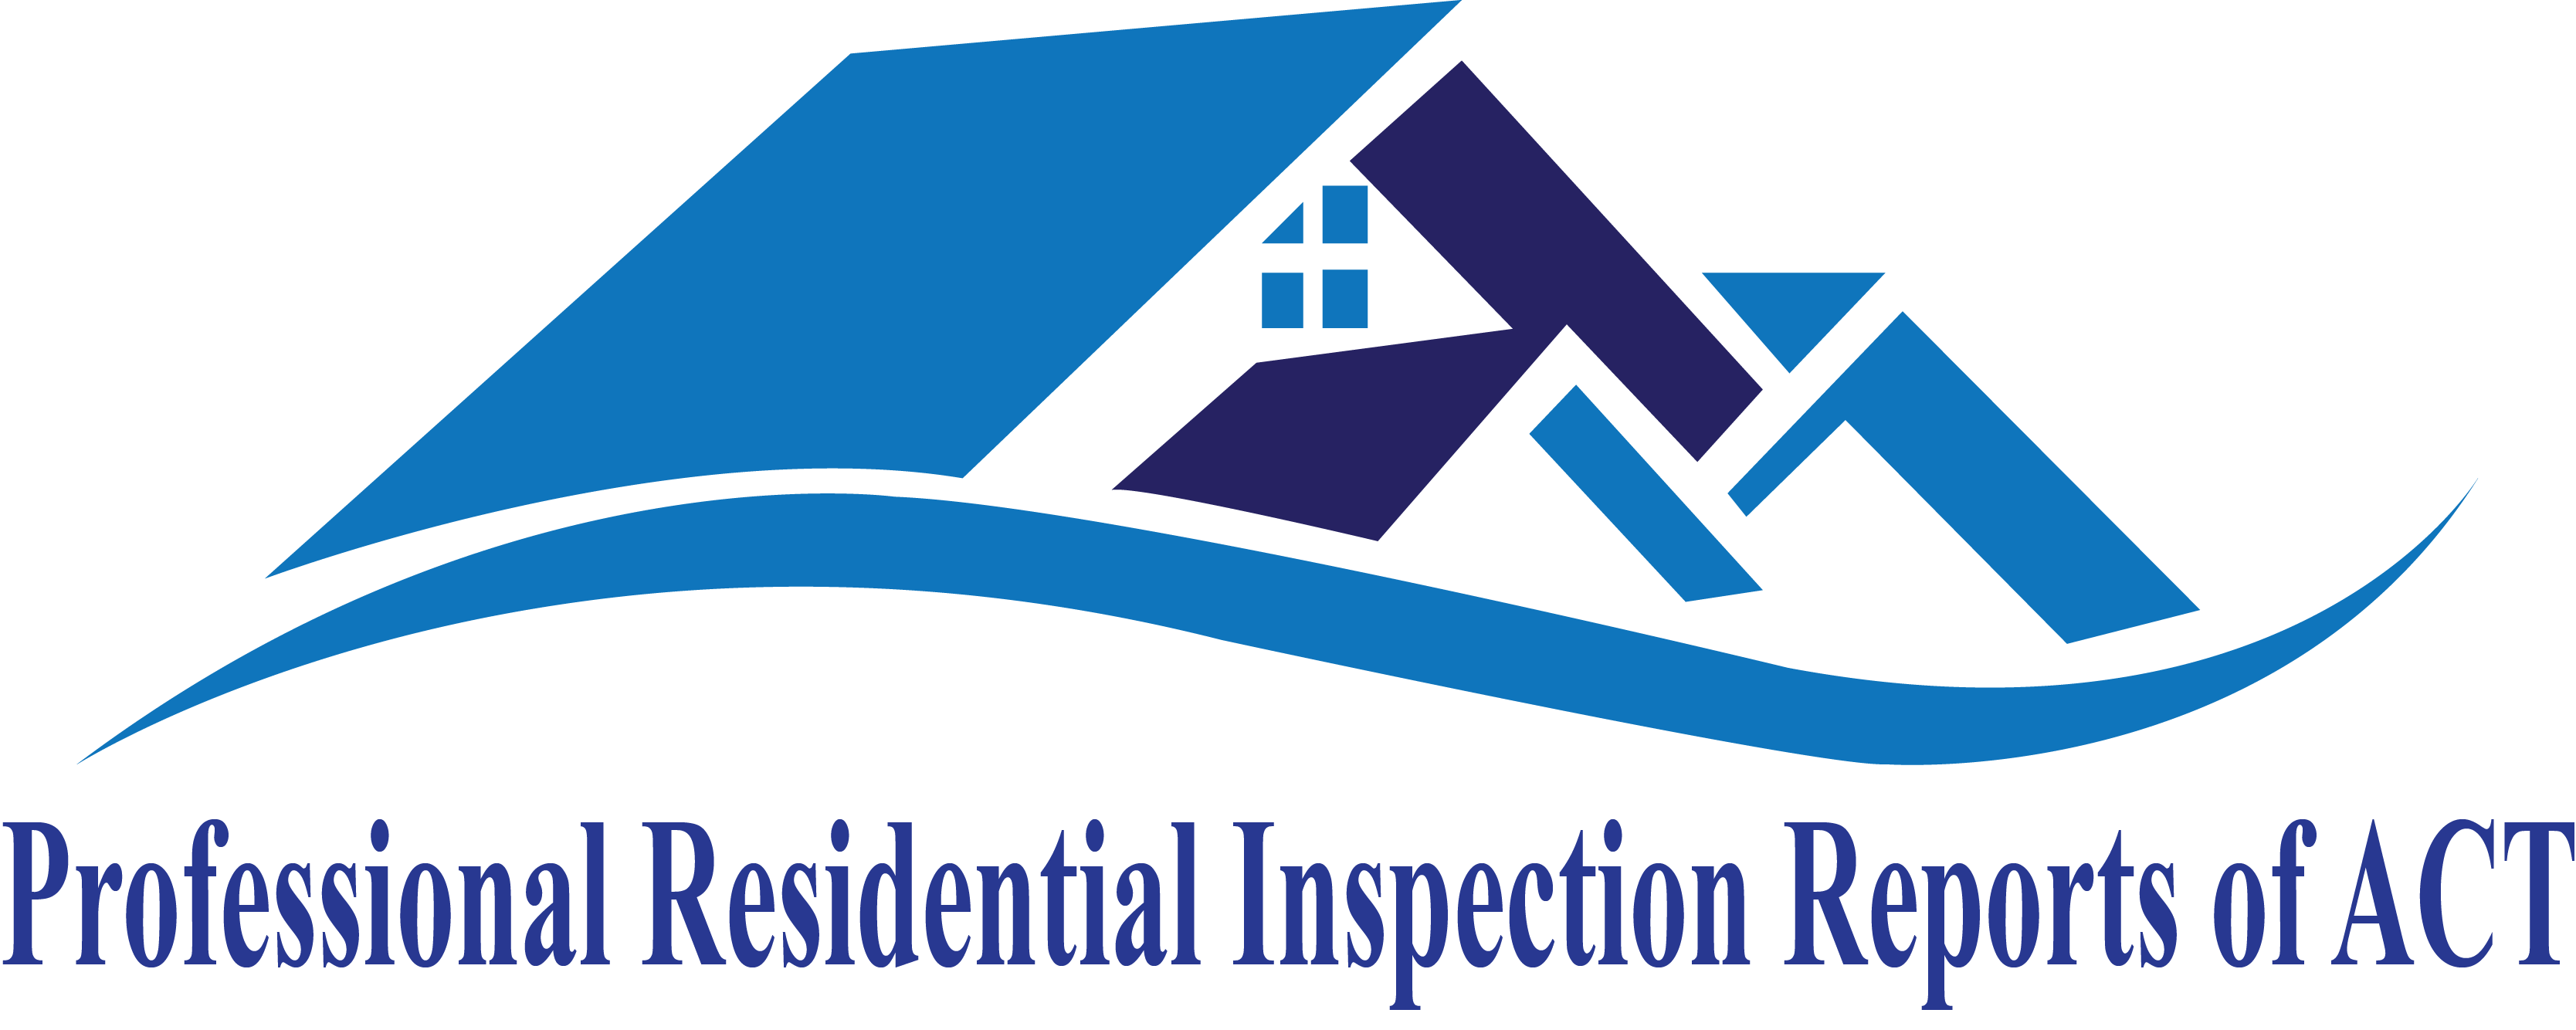 Professional Residential Inspection Reports of ACT